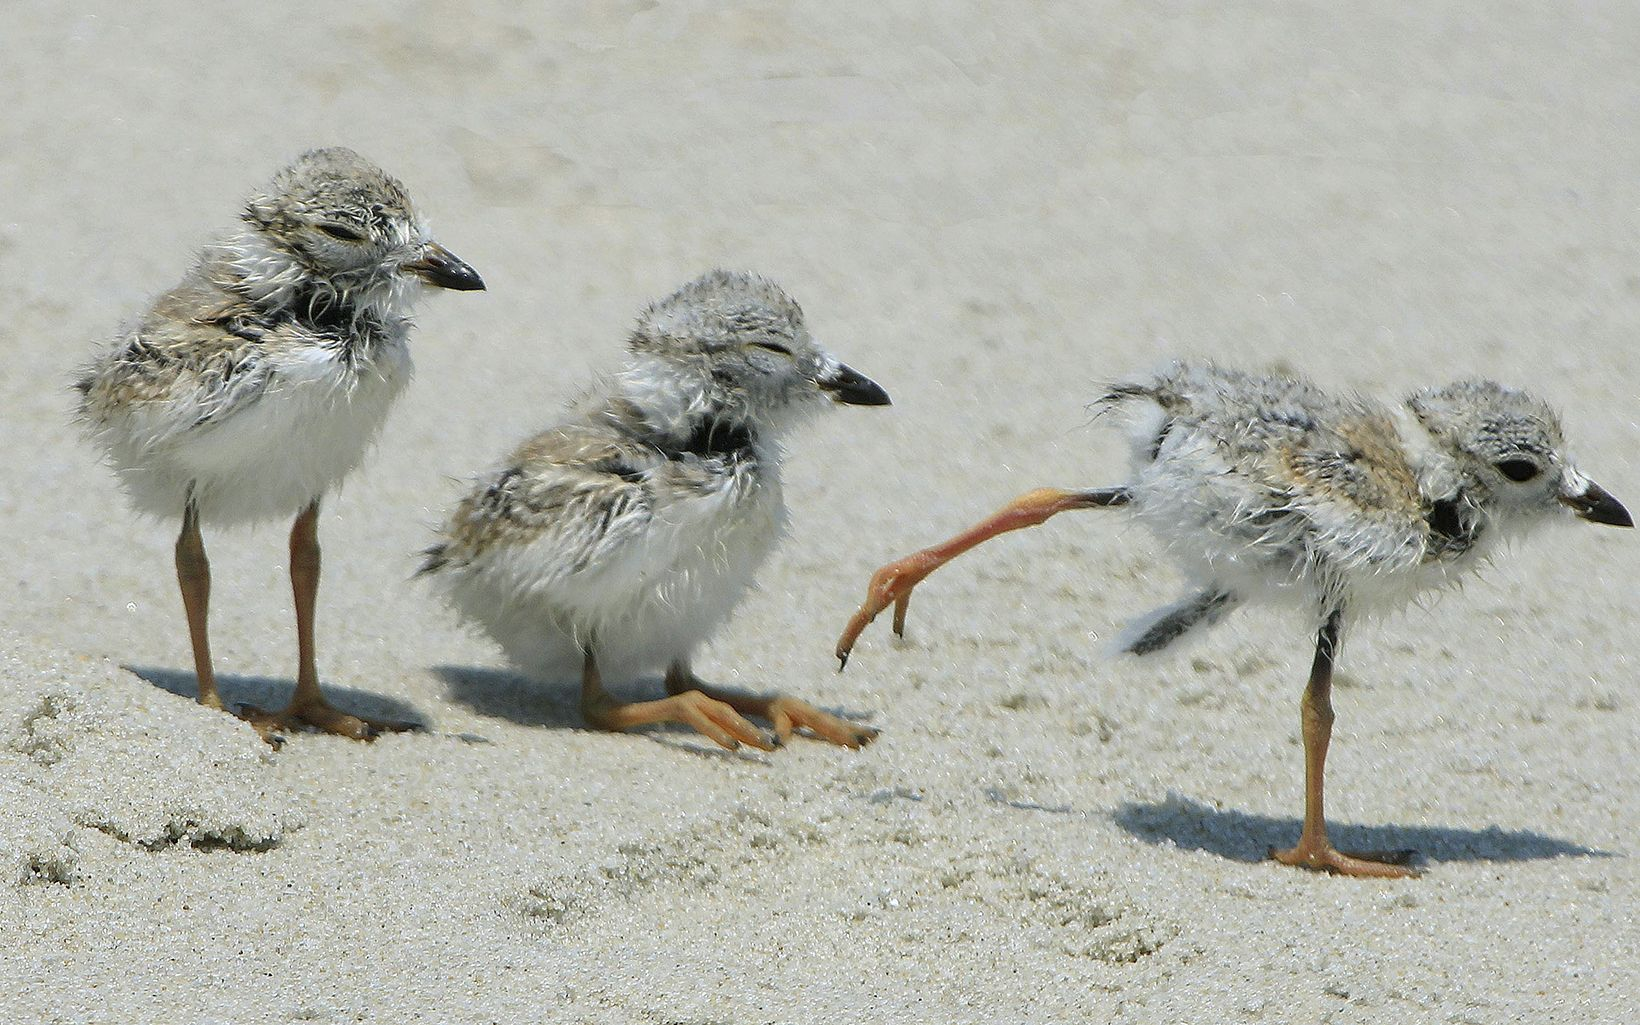 Three piping plover chicks are walking on a beach.